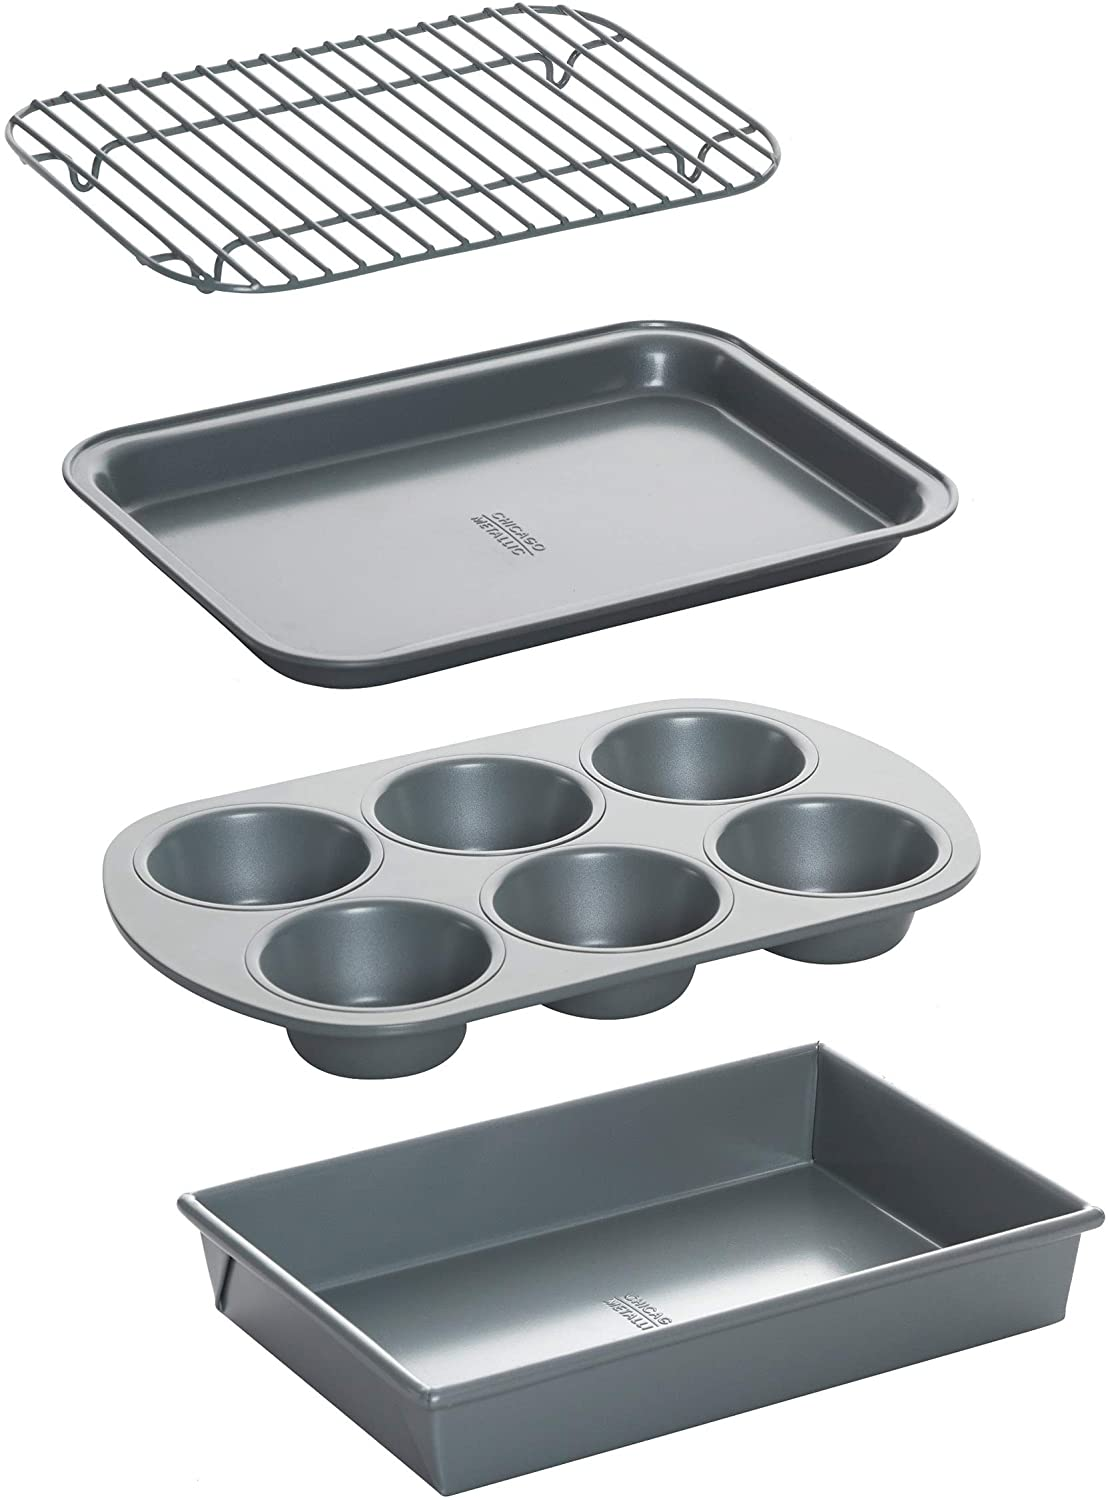 Best 5 Nonstick Bakeware Sets